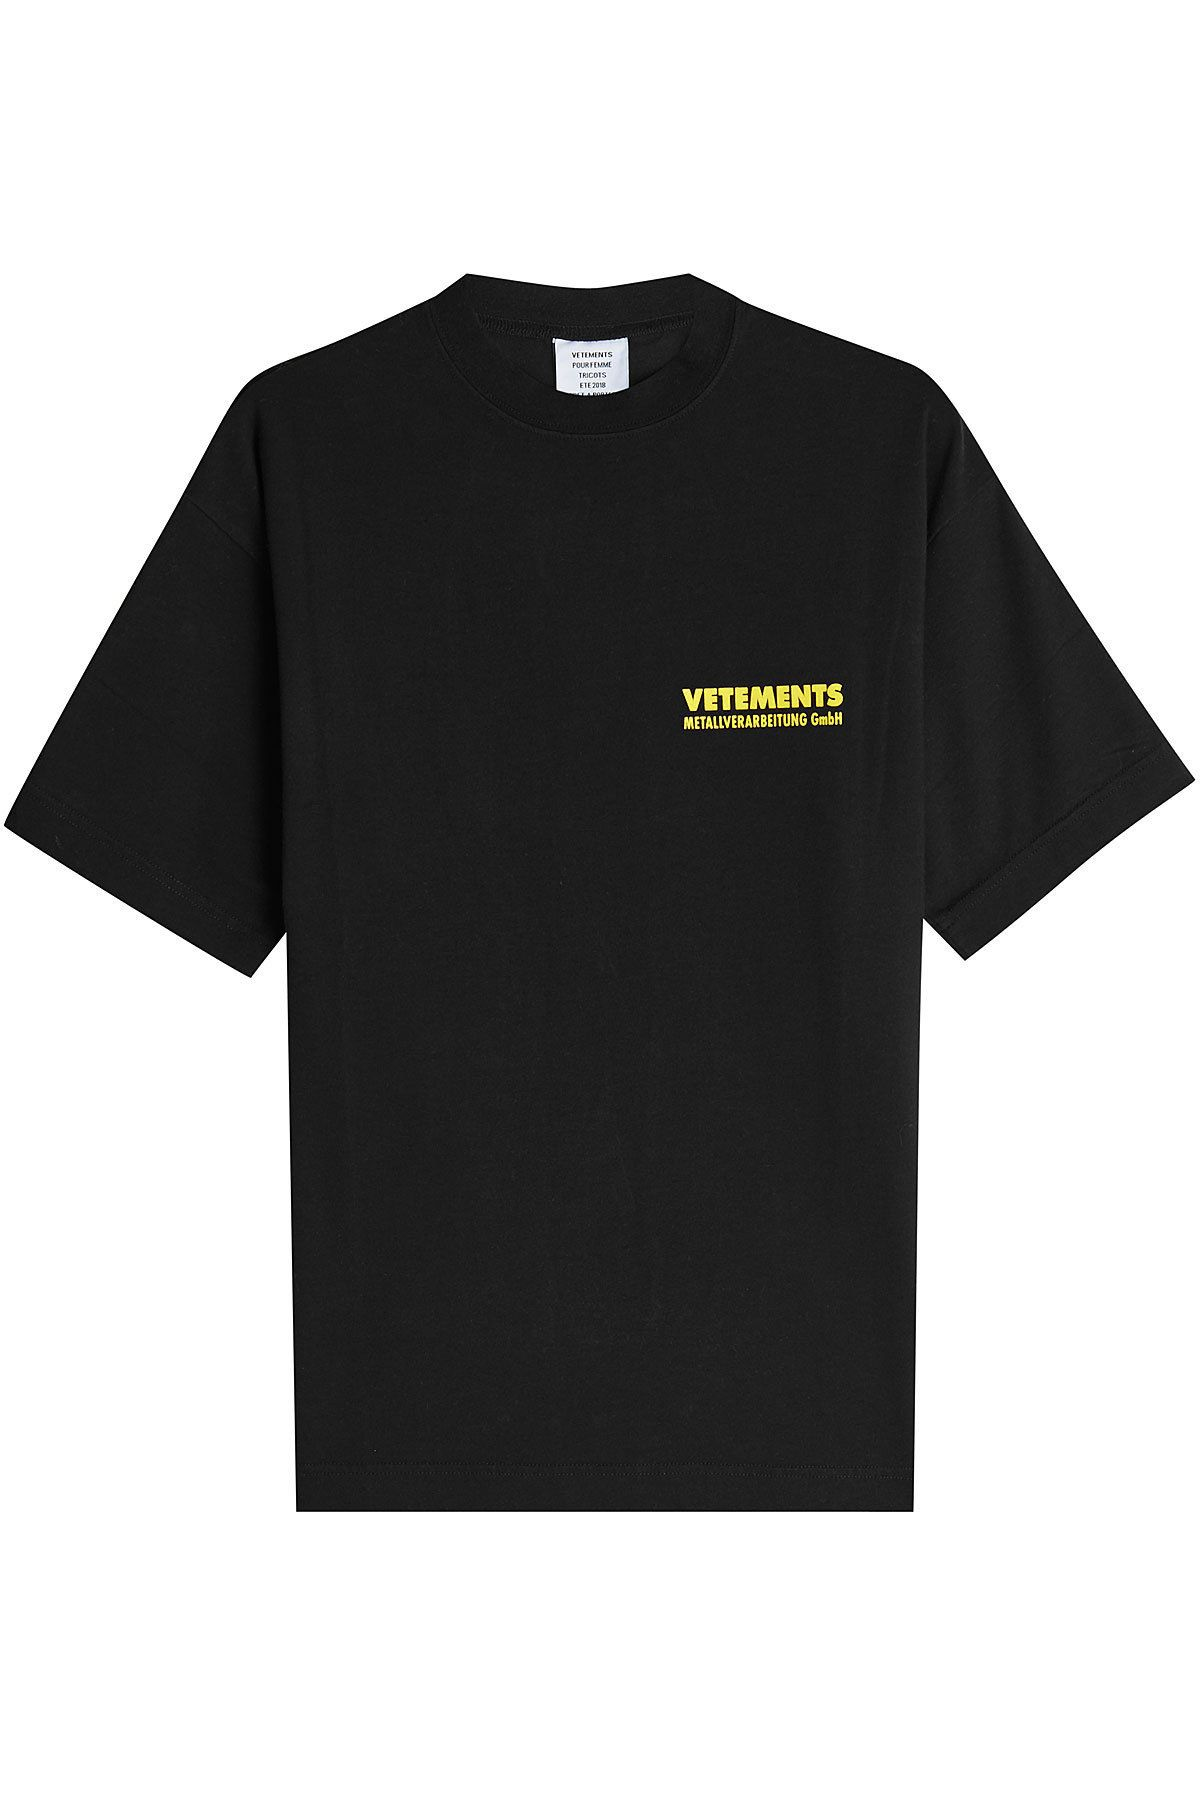 Vetements Printed Cotton T Shirt Vetements Cloth Vetements In